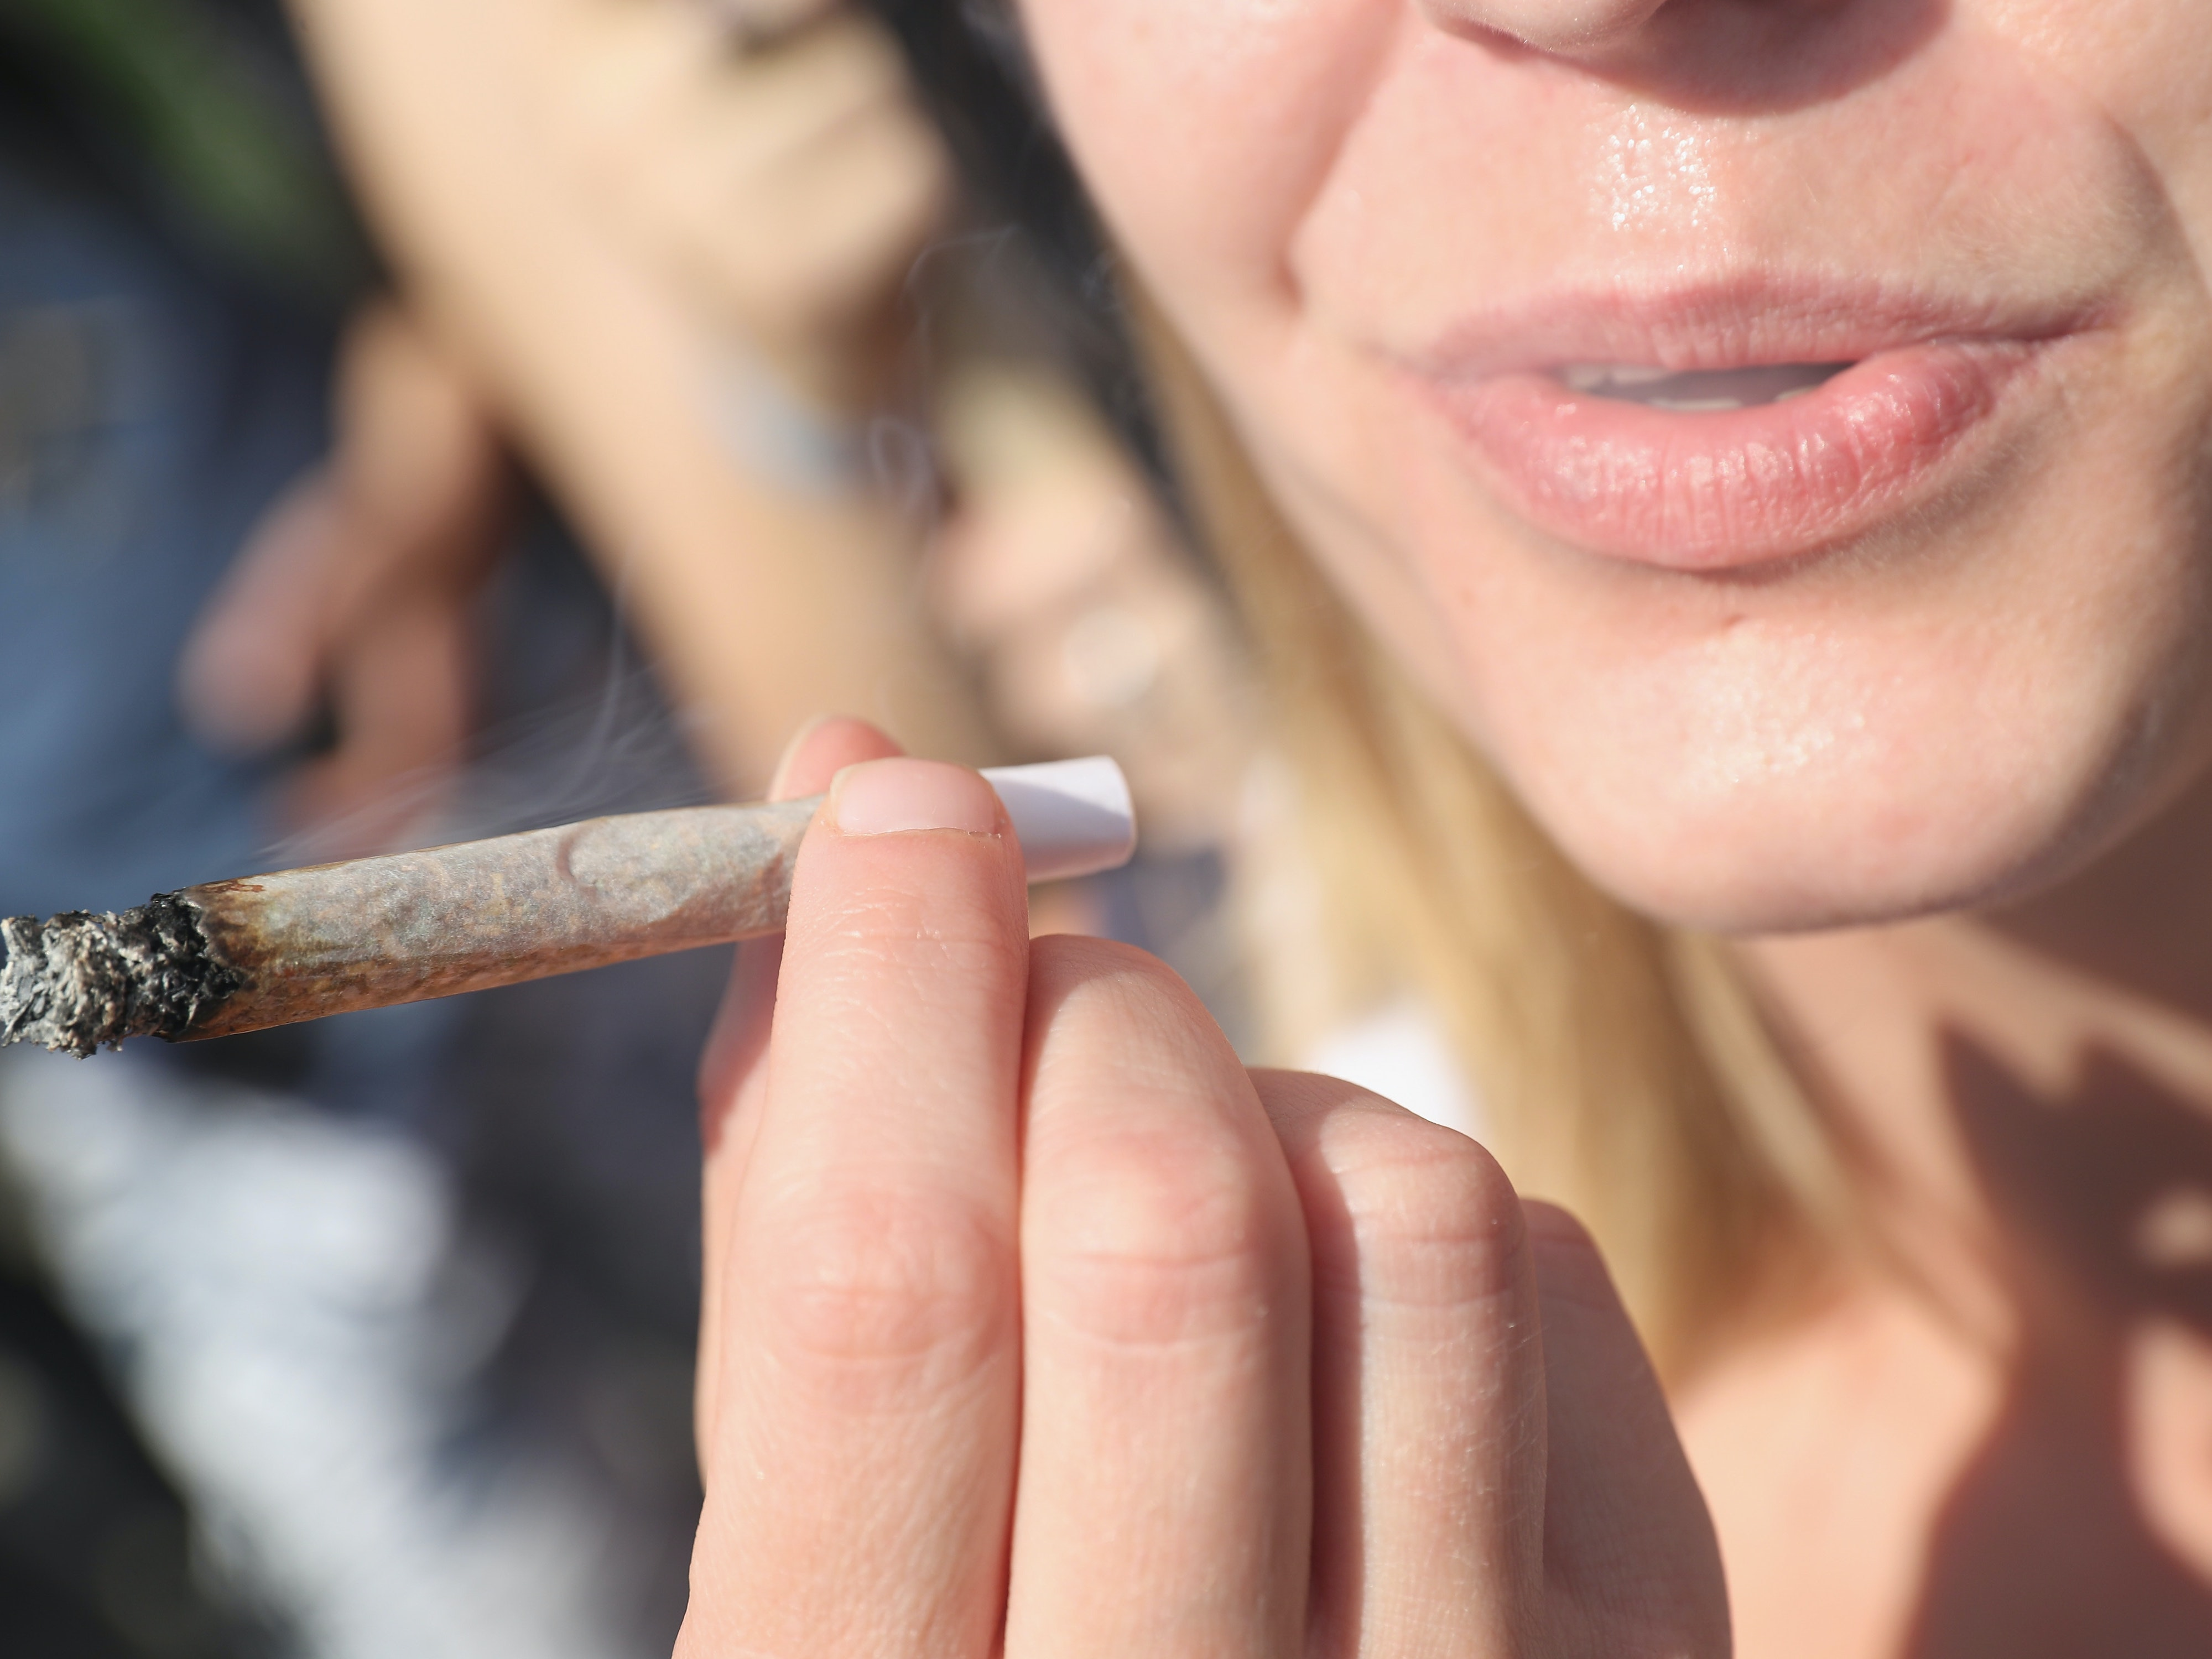 BERLIN, GERMANY - AUGUST 13:  An activists smokes a marijuana joint prior to marching in the annual Hemp Parade (Hanfparade) on August 13, 2016 in Berlin, Germany. German proponents of cannabis legalization are hoping that the legalization in several states in the USA in recent years will increase the likelihood of legalization in Germany.  (Photo by Sean Gallup/Getty Images)